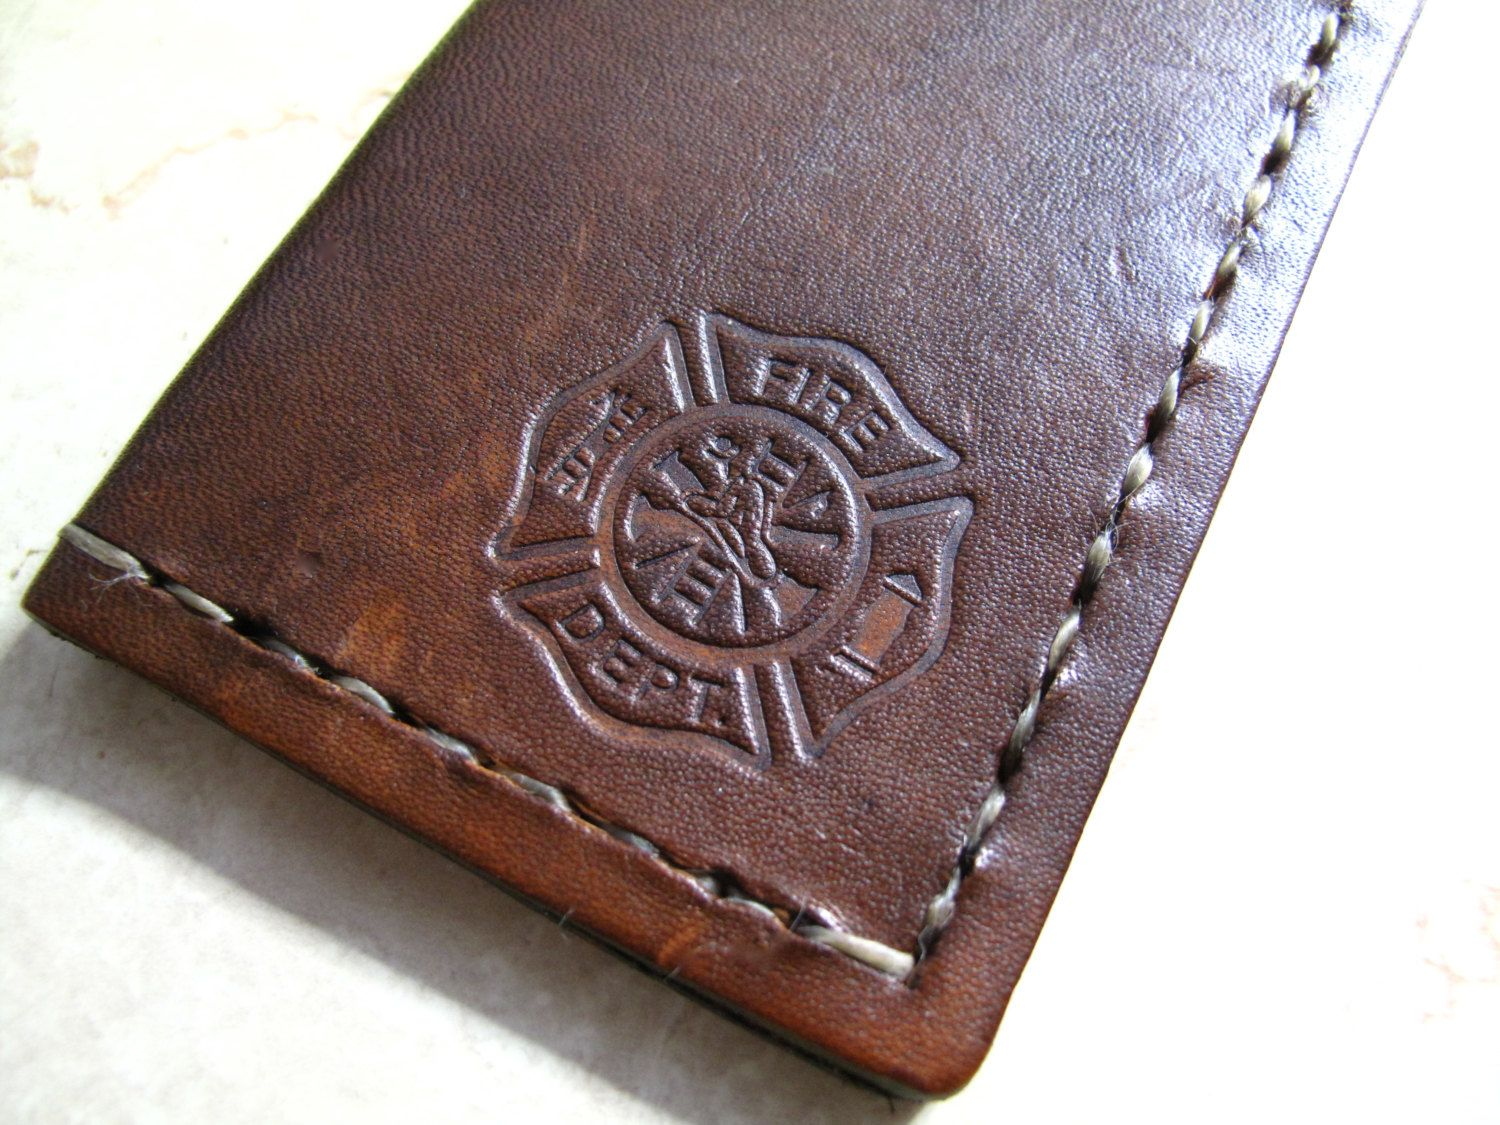 Fireman Leather Business Card Holder Case Sleeve Hand Stamped Tooled Leather Working Leather Business Cards Leather Business Card Holder Laser Engraved Gifts